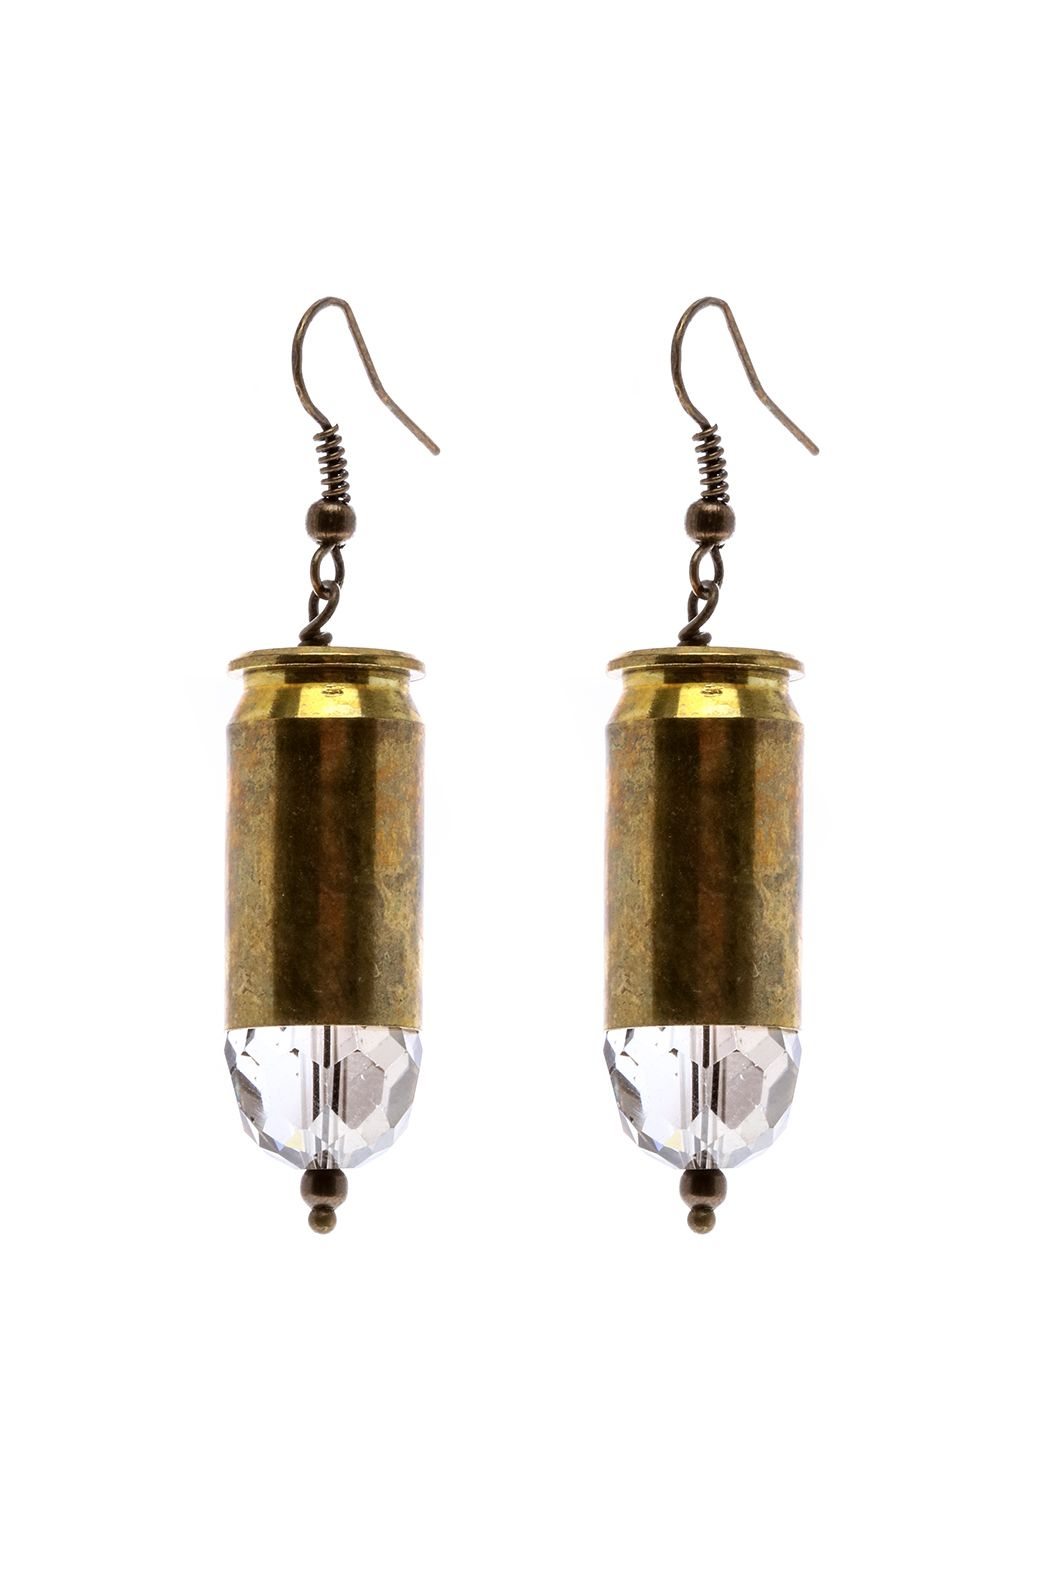 House Of Cach Brass Bullet Earring Pinterest Earrings Rhode Island Wiring French Wire Hooks Approx Measures 175 Long By Accessories Jewelry